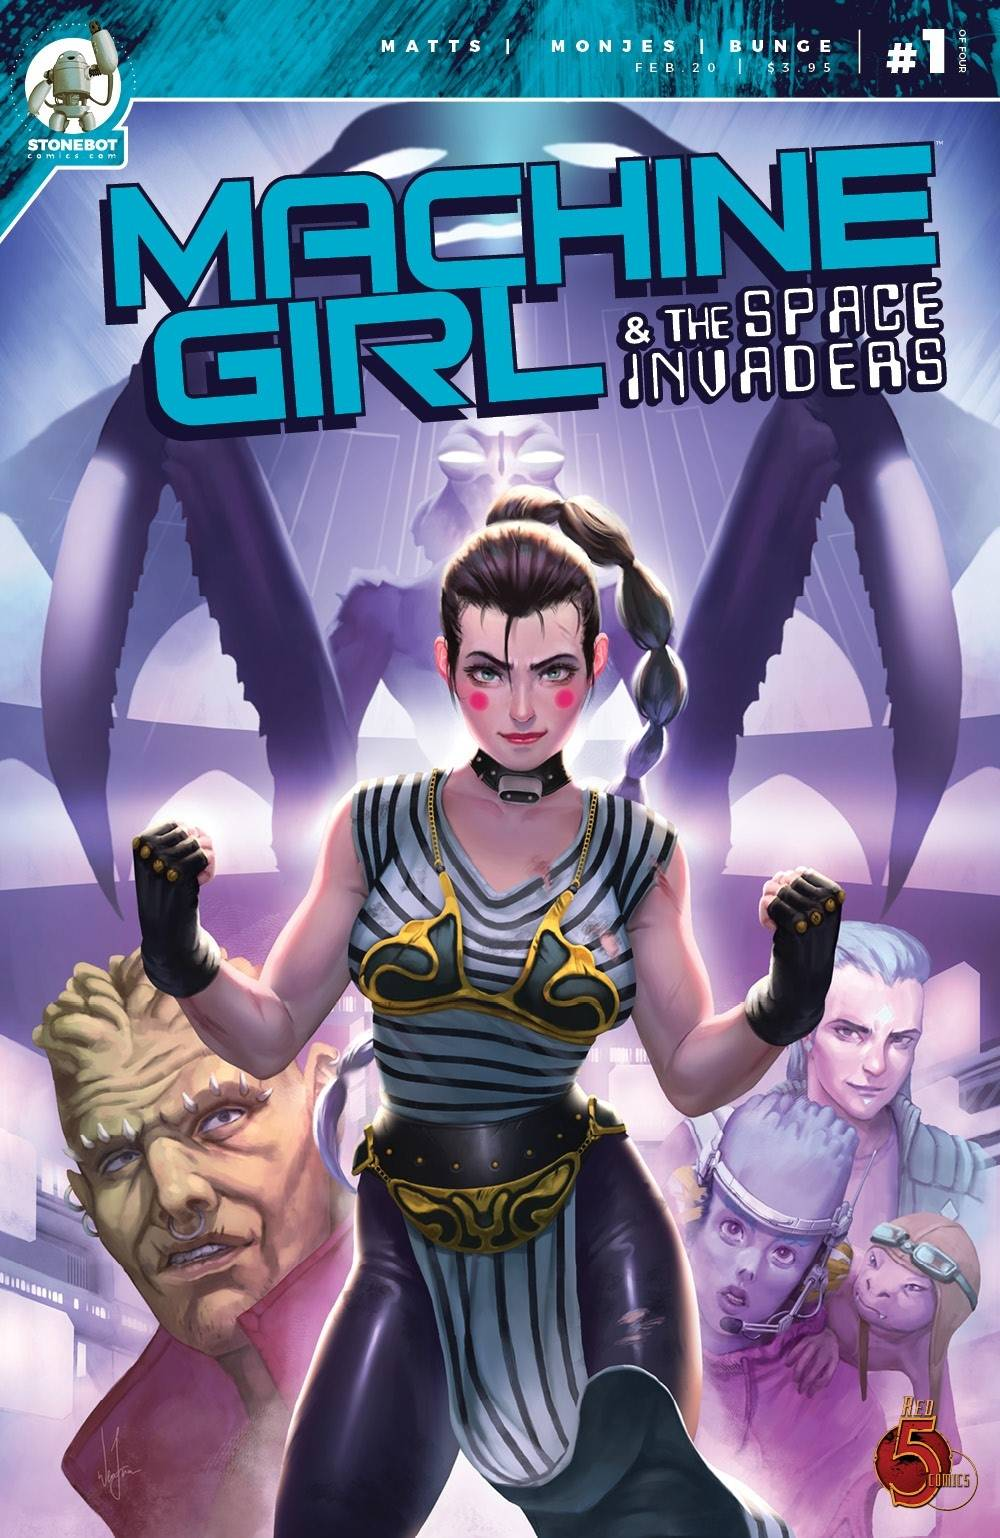 MACHINE GIRL & SPACE INVADERS #1 (MR)